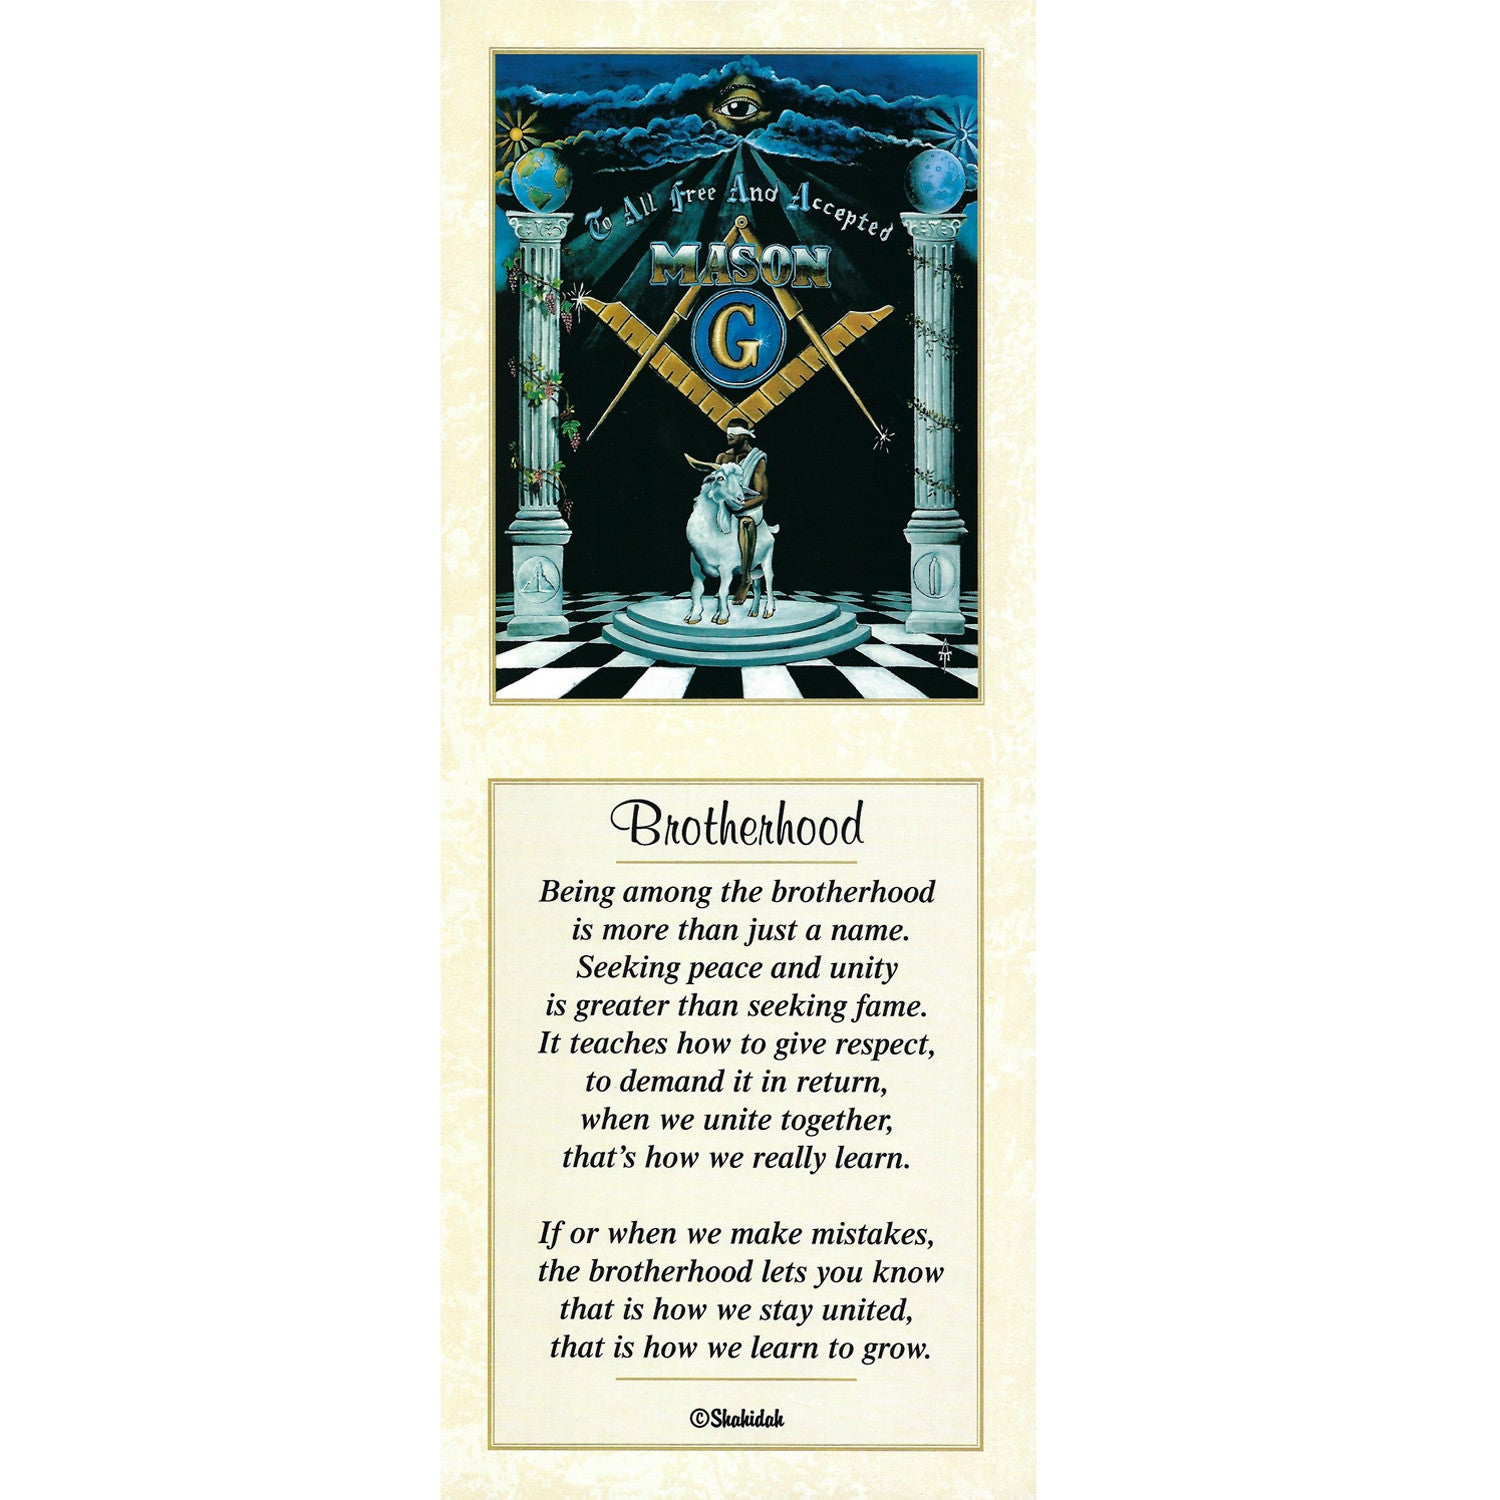 Brotherhood (Freemasonry) by Tracy Andrews and Shahidah